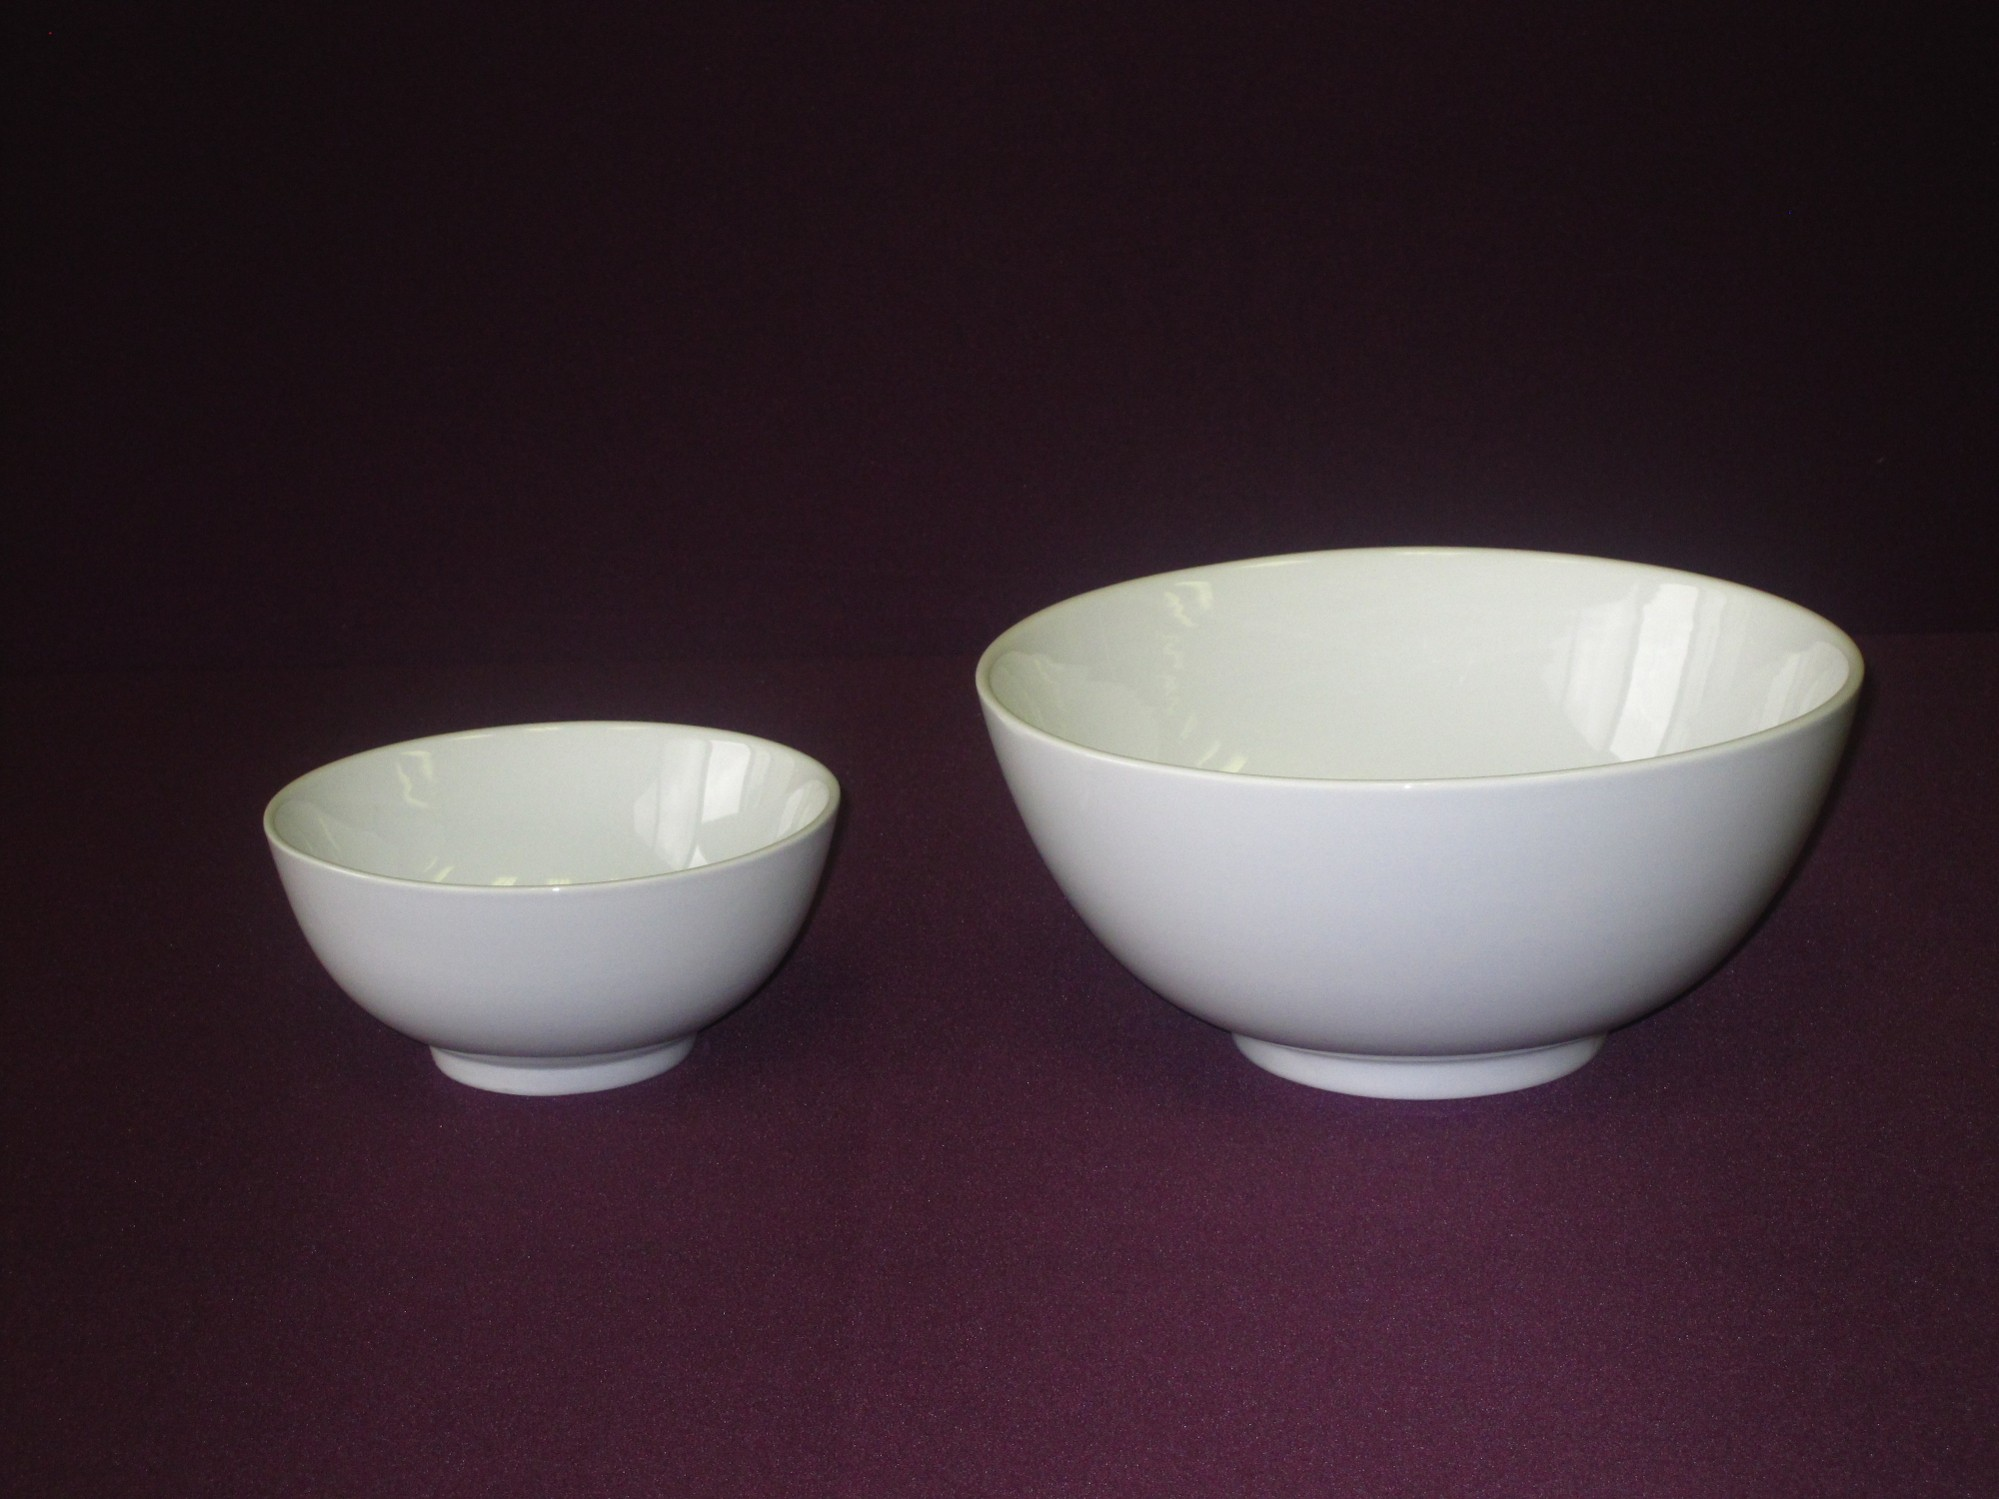 white_ceramic_bowls.jpg